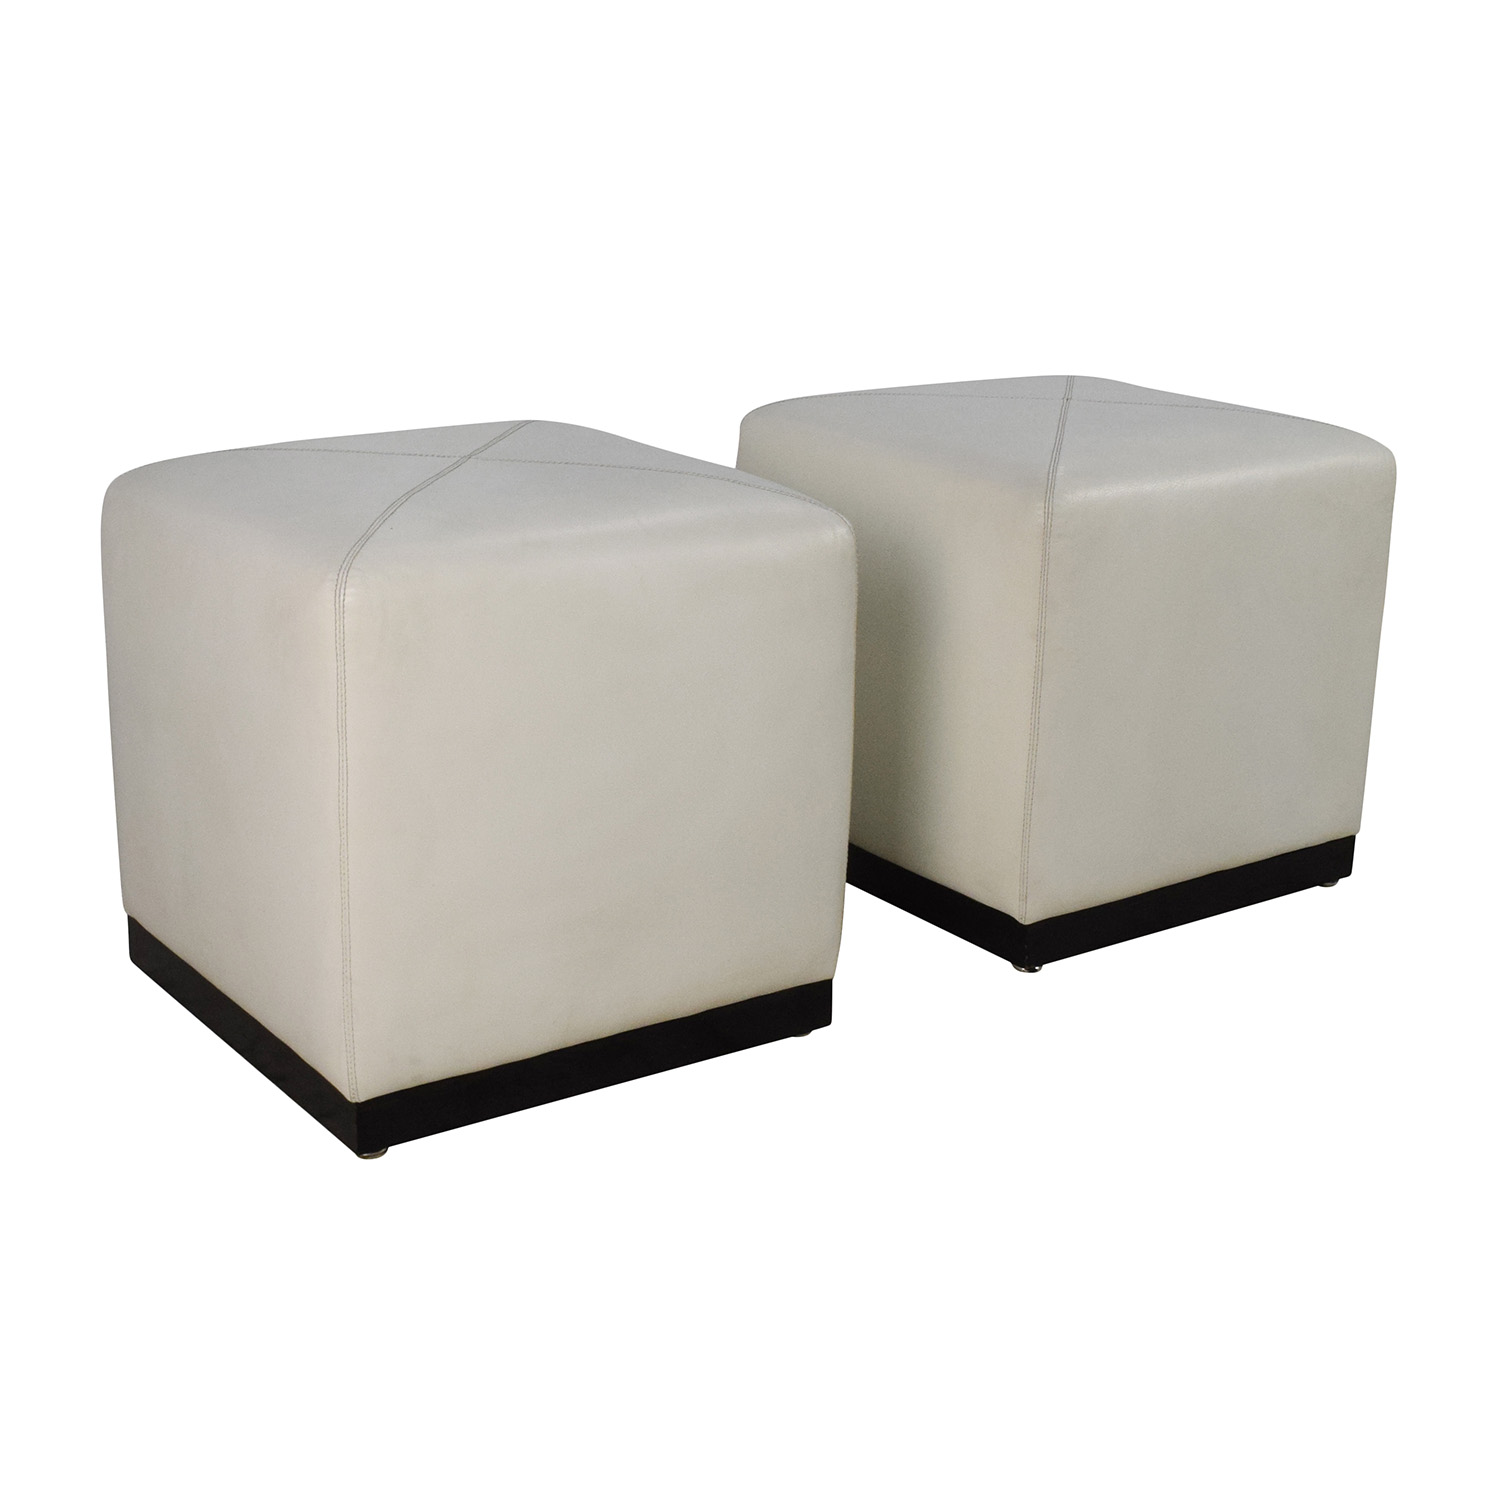 68 off pair of white leather ottoman cubes storage. Black Bedroom Furniture Sets. Home Design Ideas